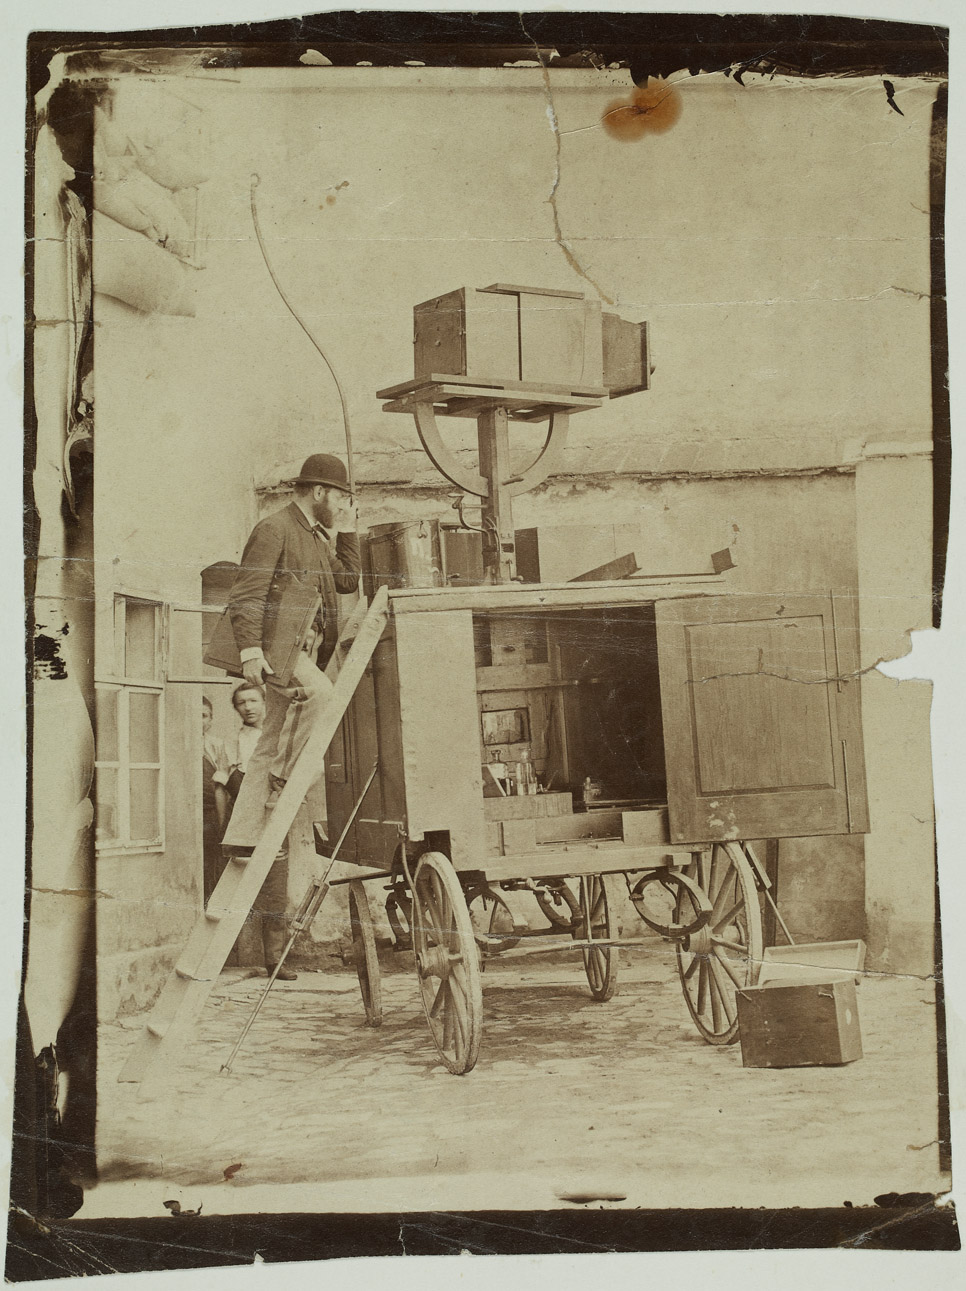 Gustav Jägermayer with his collodion photo developer carriage, 1860-70, inv. no. F 20283